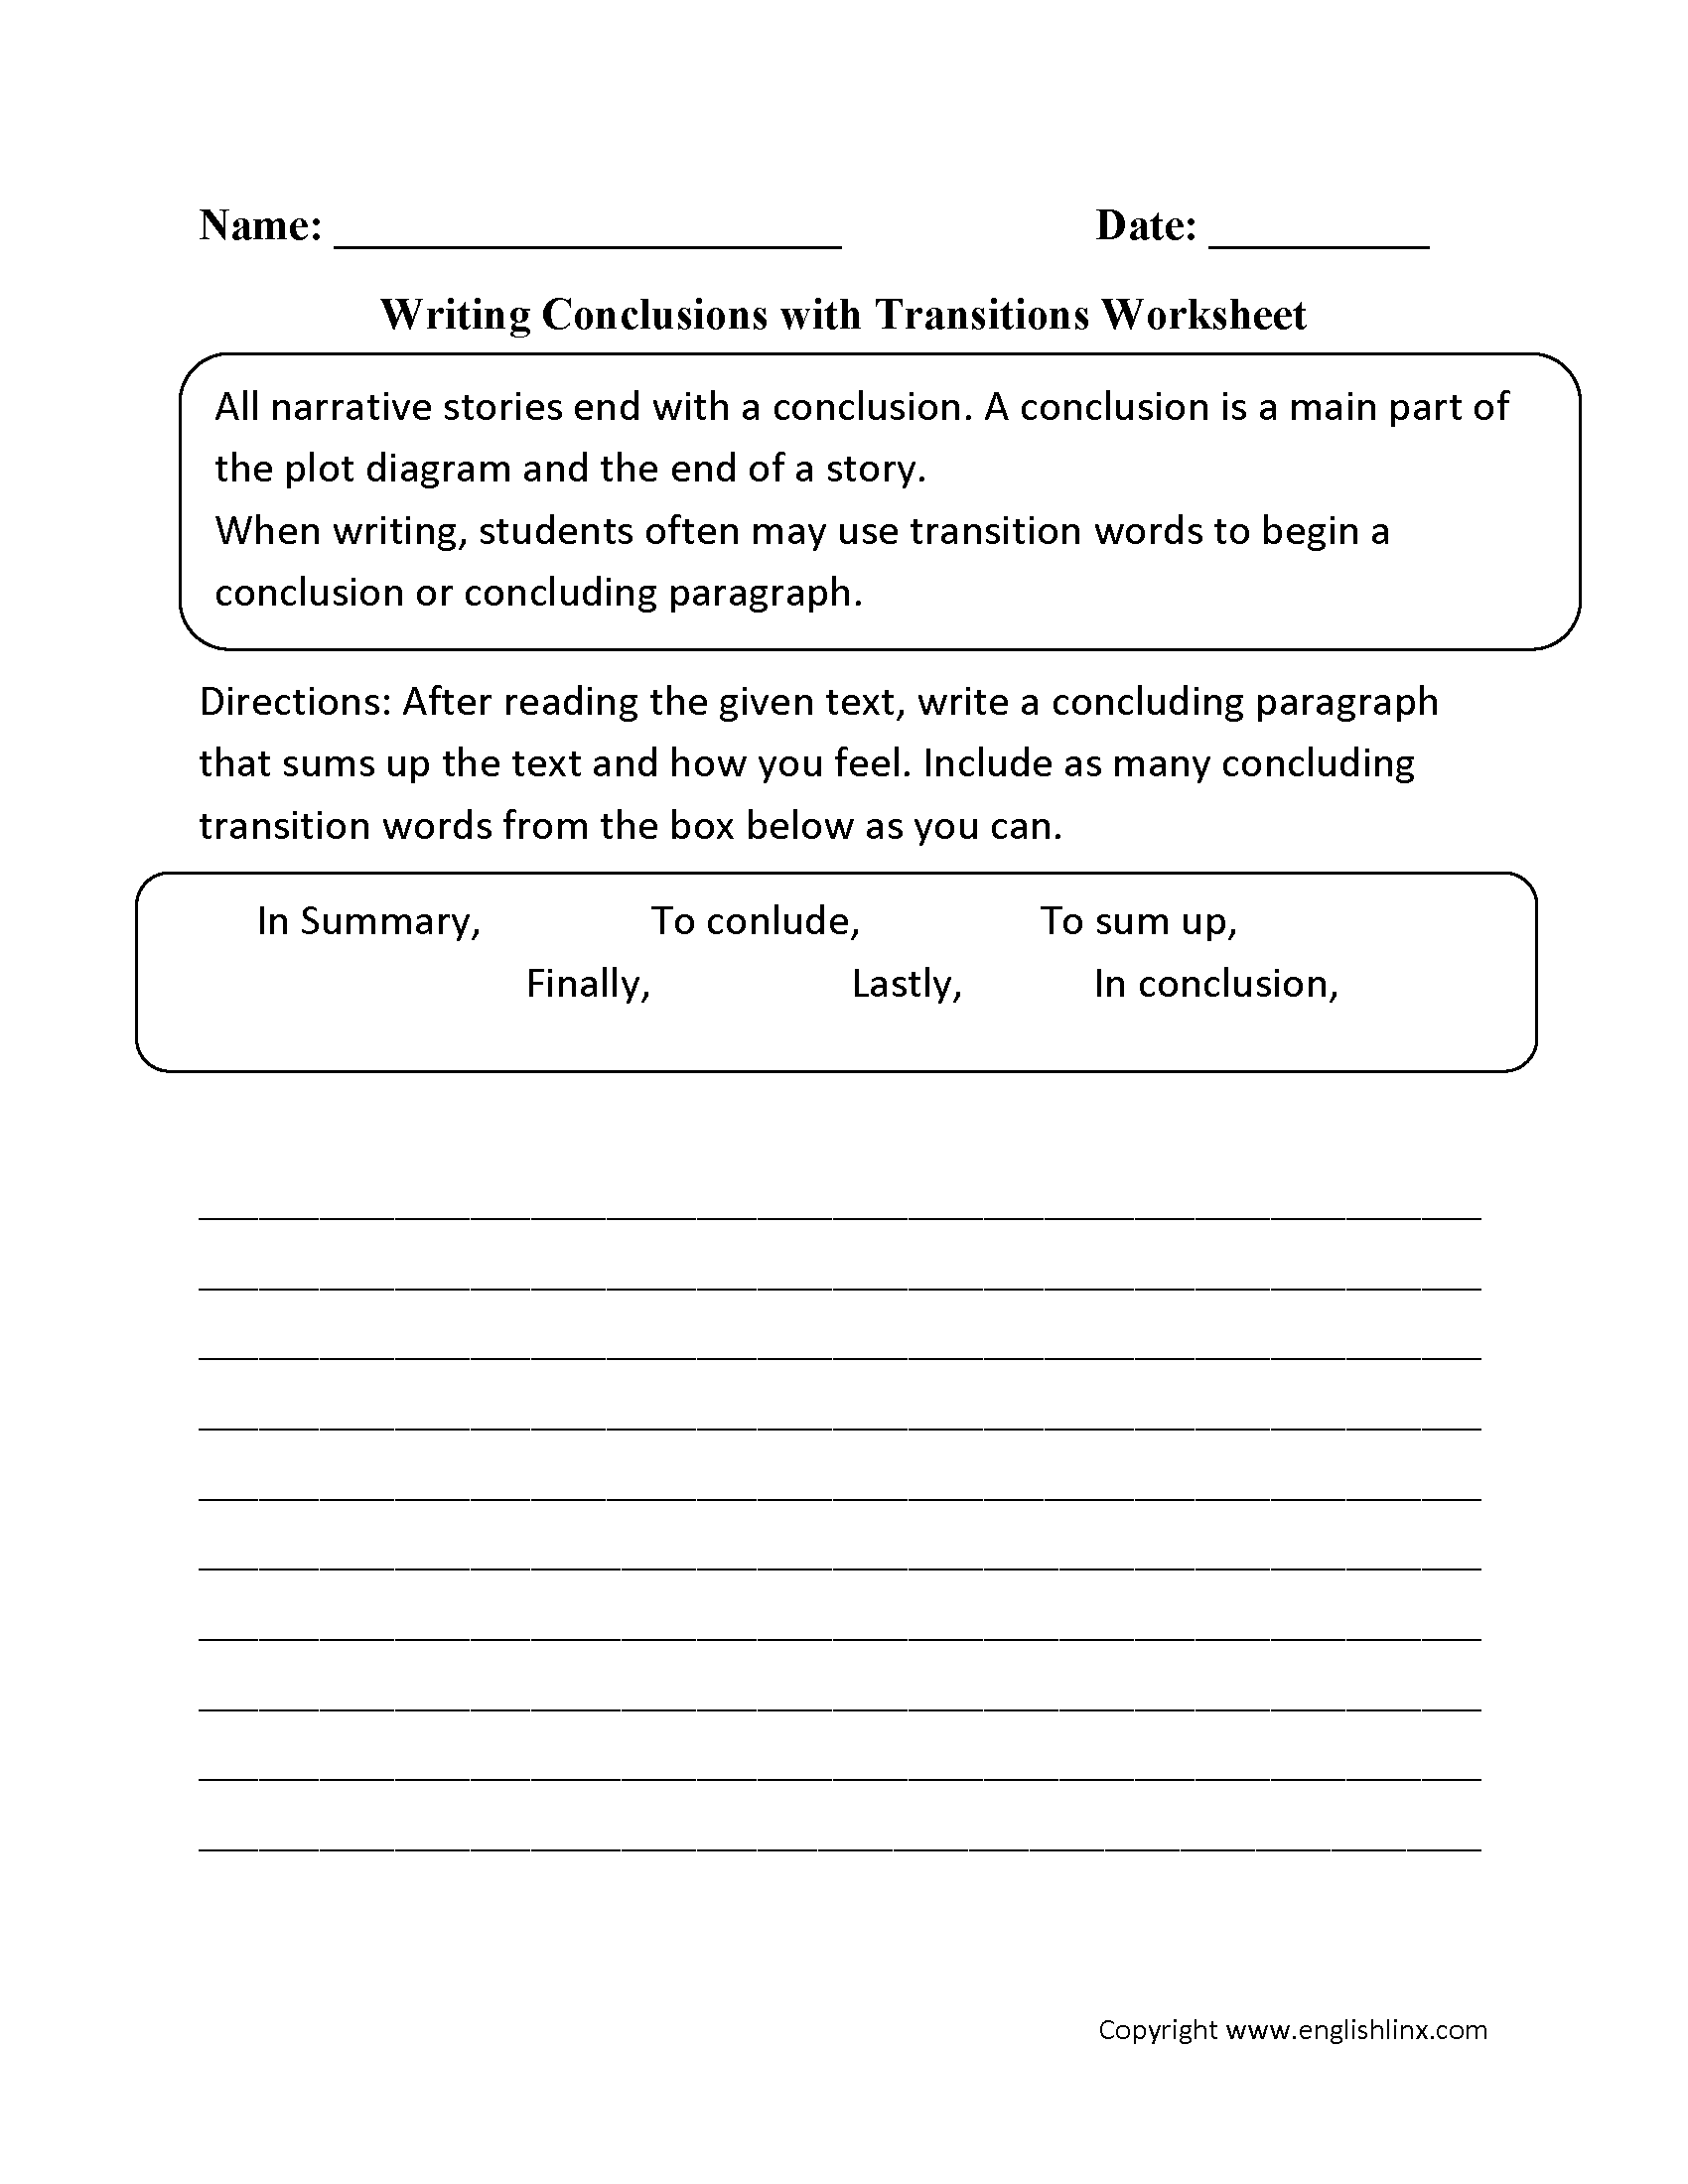 hight resolution of Writing Conclusions with Transitions Worksheets   Reading worksheets